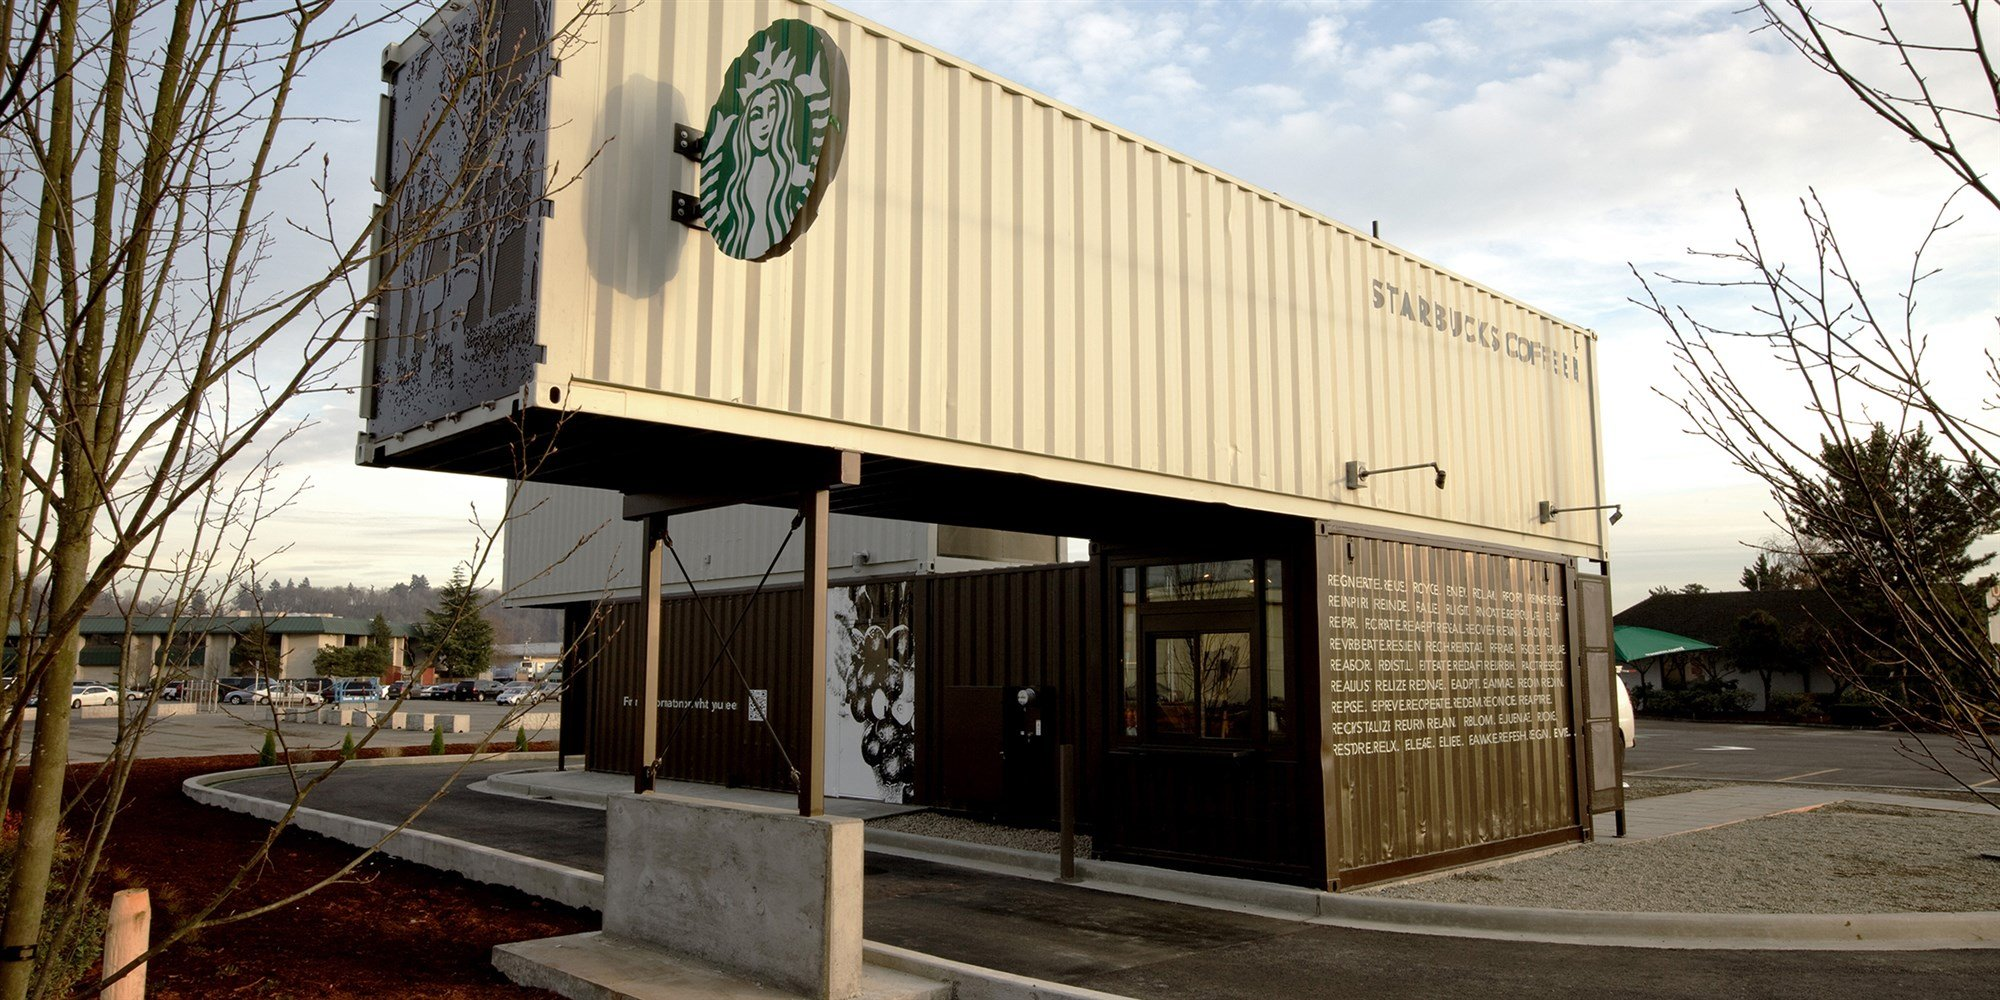 starbucks-shipping-container-today-180227-main-art_7d6ba0e510e85d15f126ed10a479c672.fit-2000w